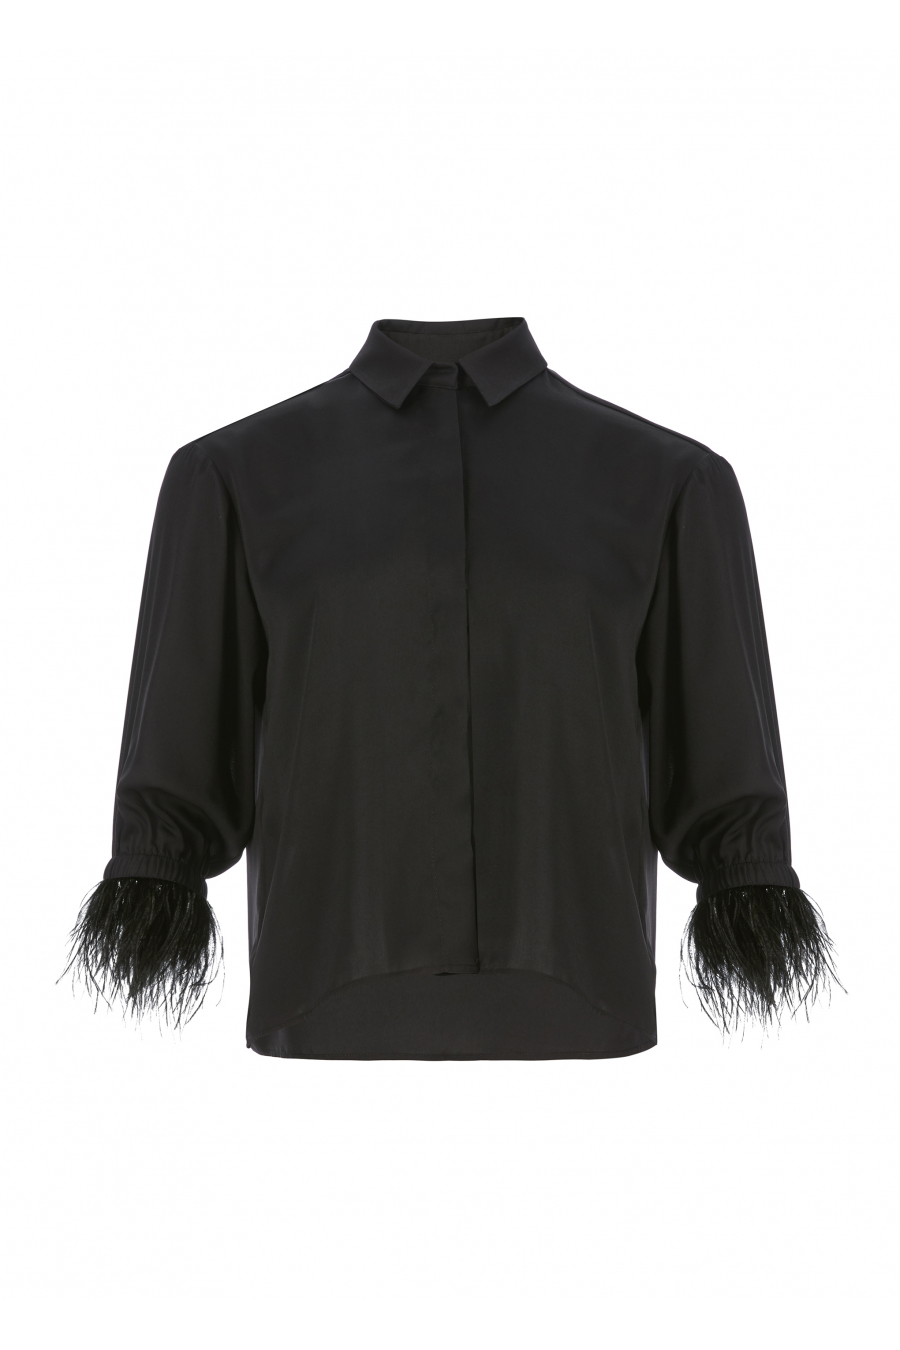 FALL-WINTER 2020 MIRACLE BLOUSE